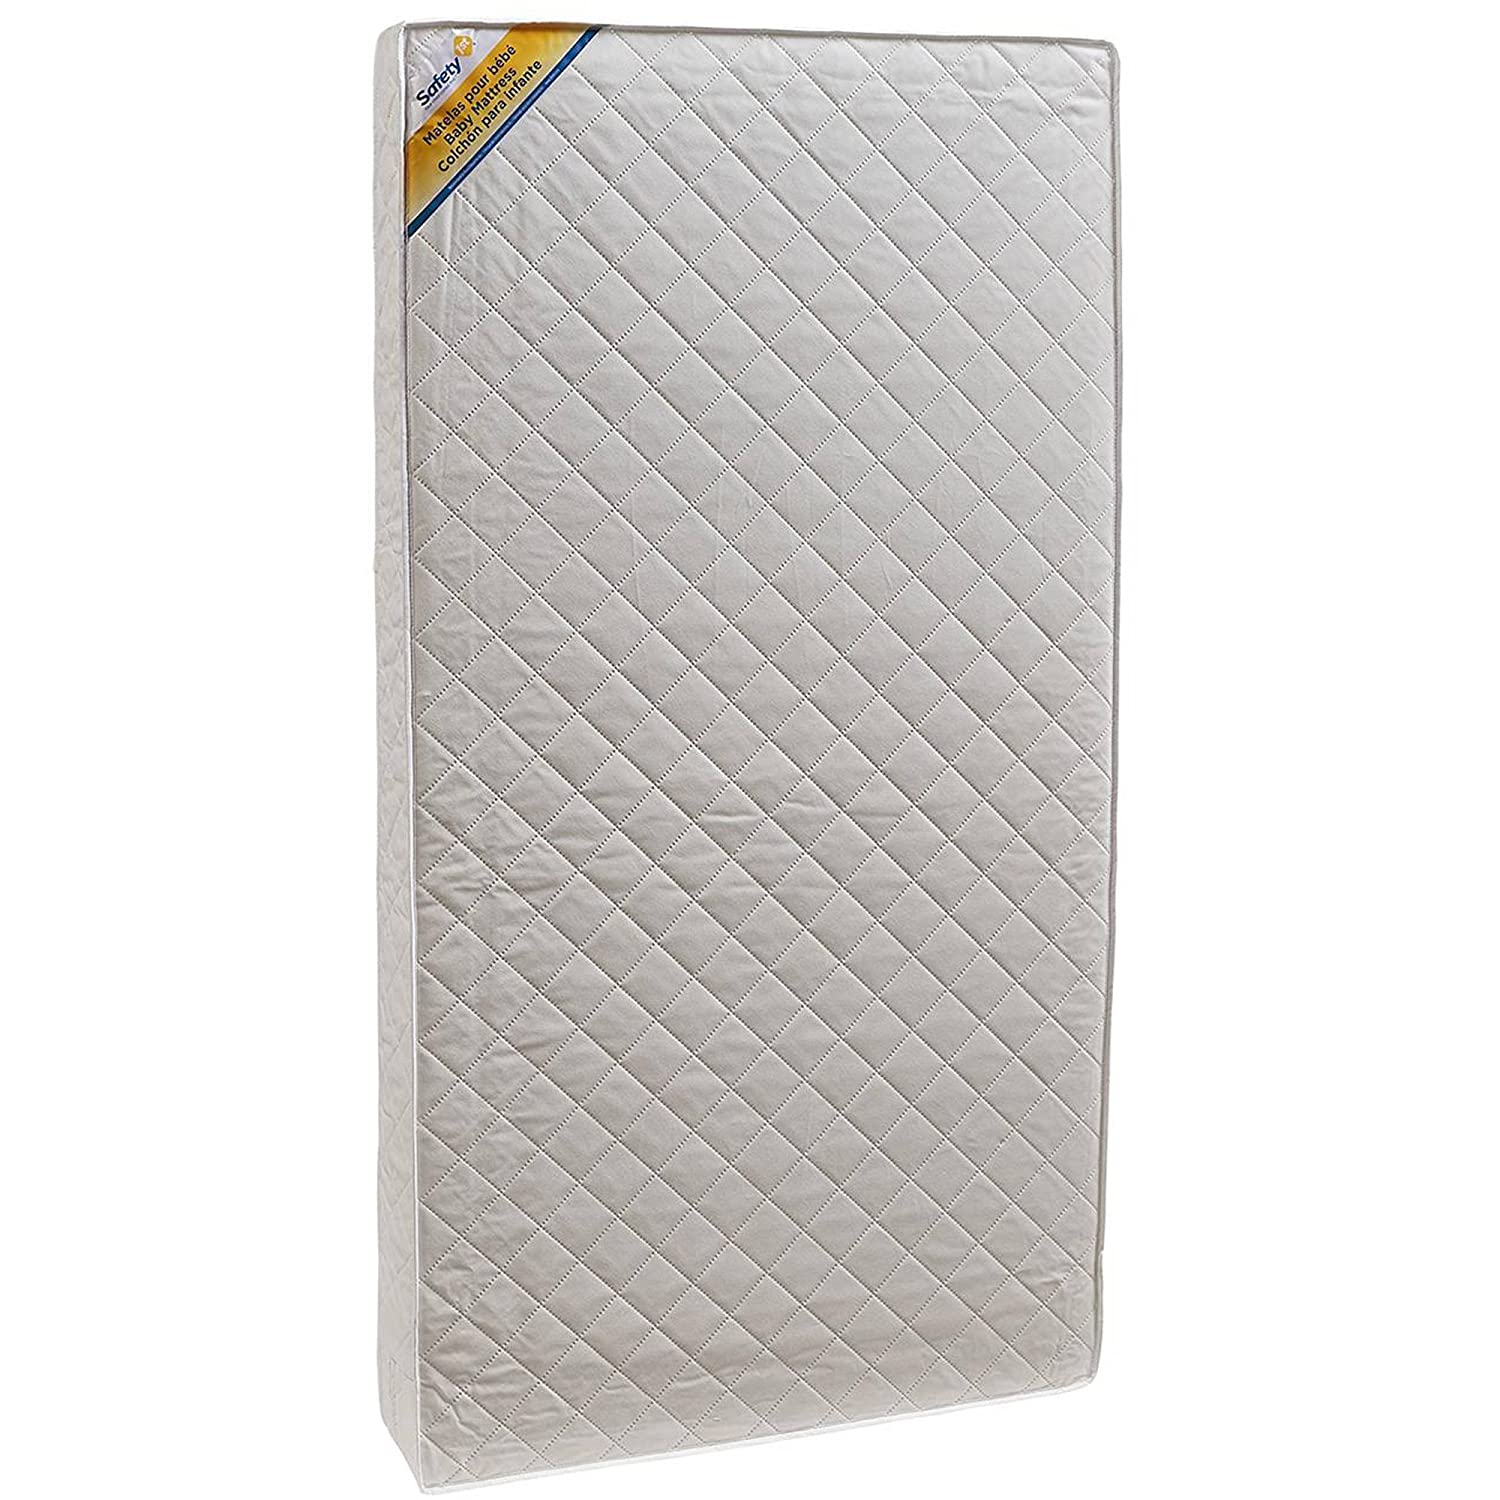 Amazon.com : 2-in-1 Crib and Toddler Mattress PVC- Free, Water Resistant Cover Thermo-bonded Fiber Core Provides Firm Support for Infant Fits Standard Cribs ...